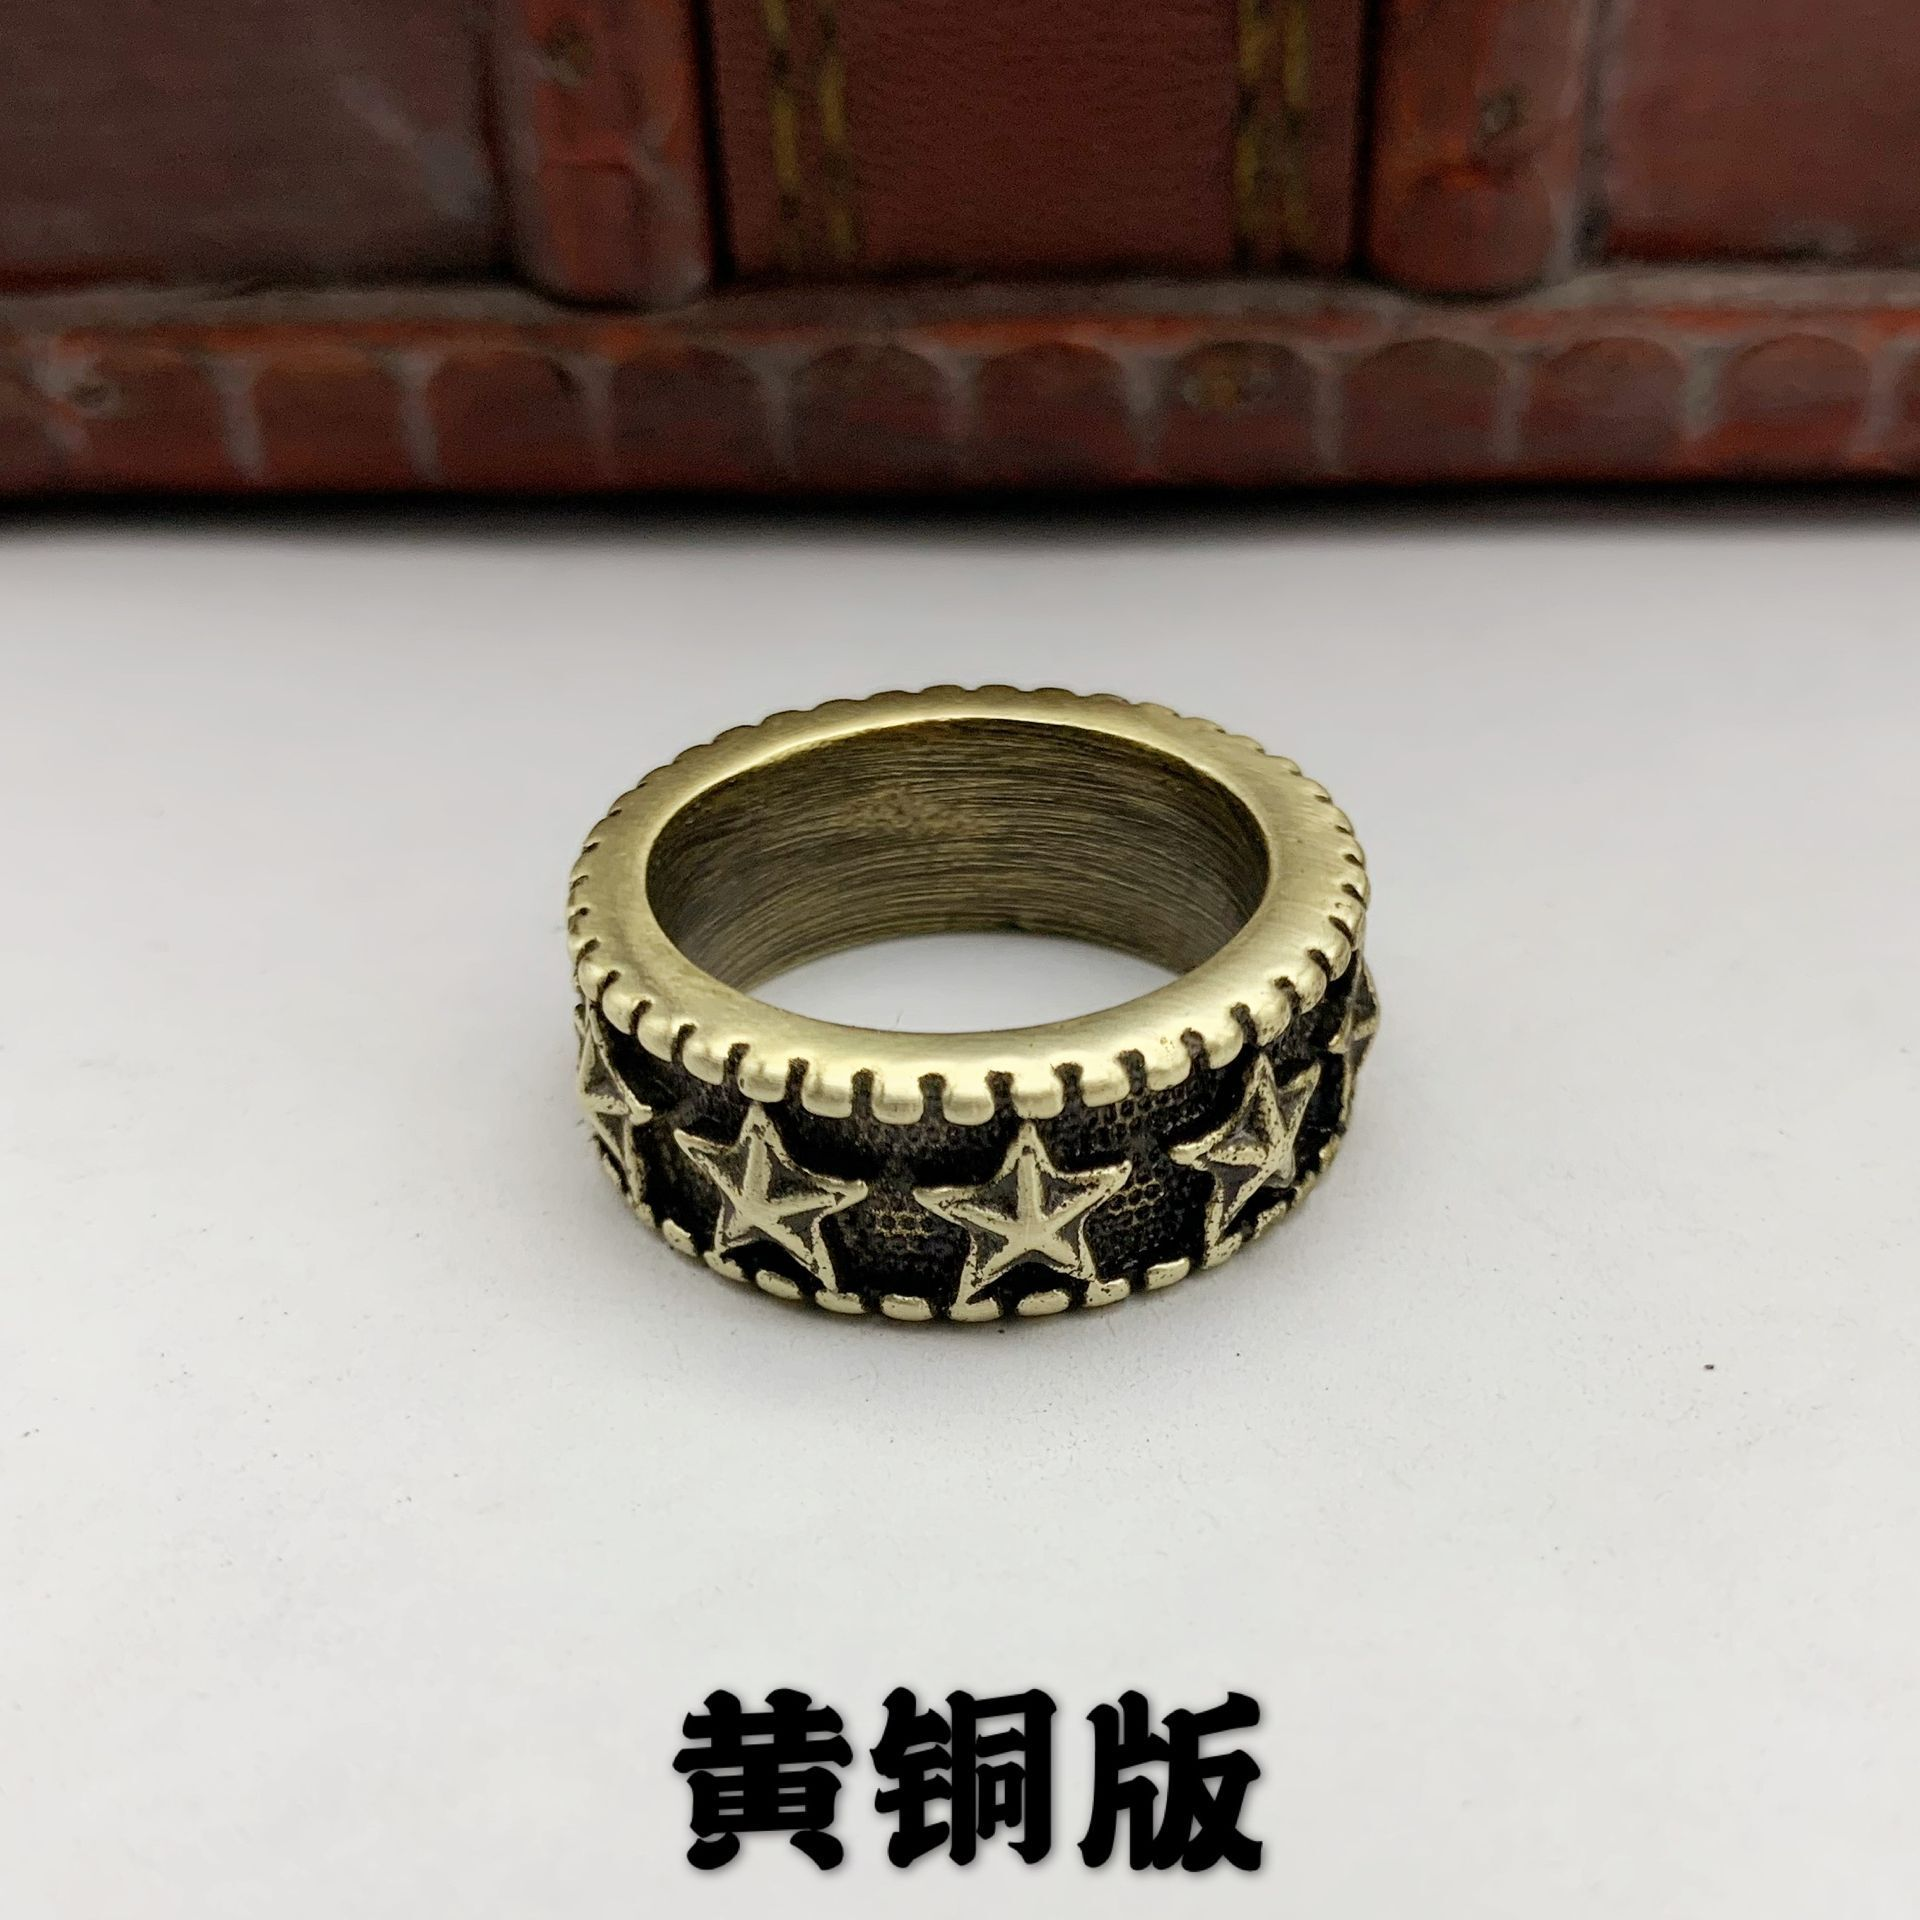 Retro Five Star Ring for Vintage Style Fashion Aesthetics